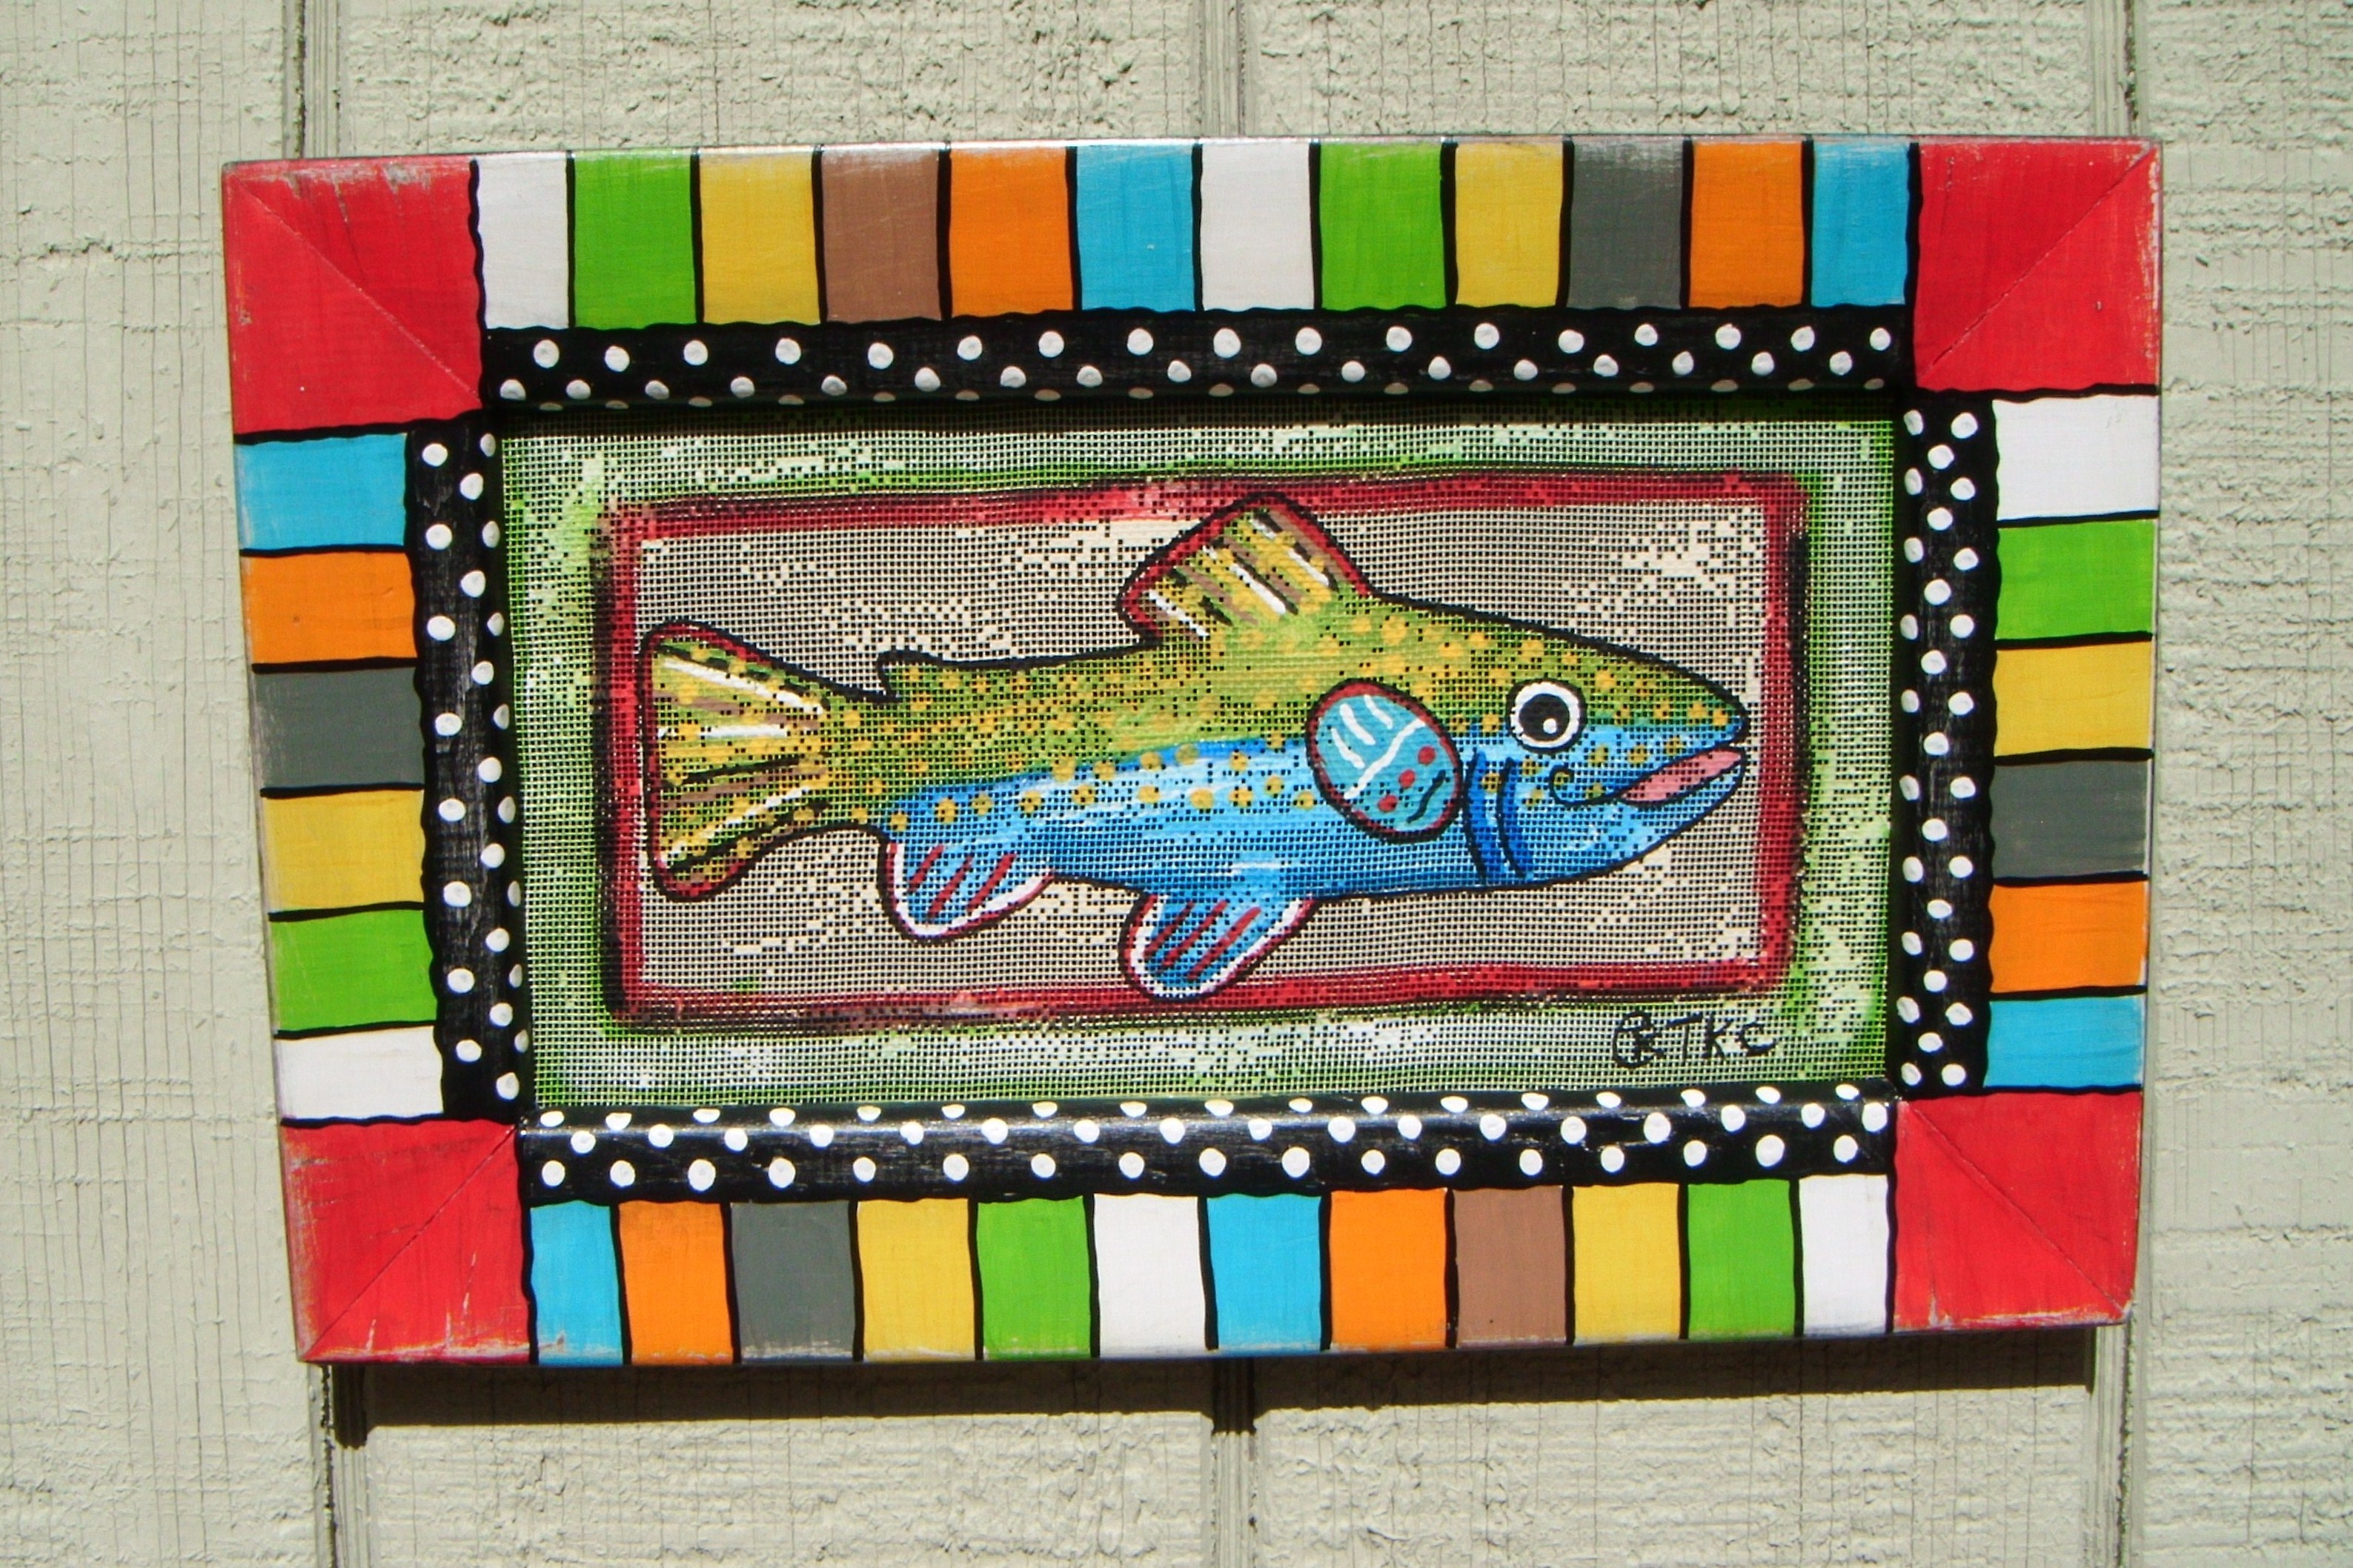 Fish Painting on Recycled Screen